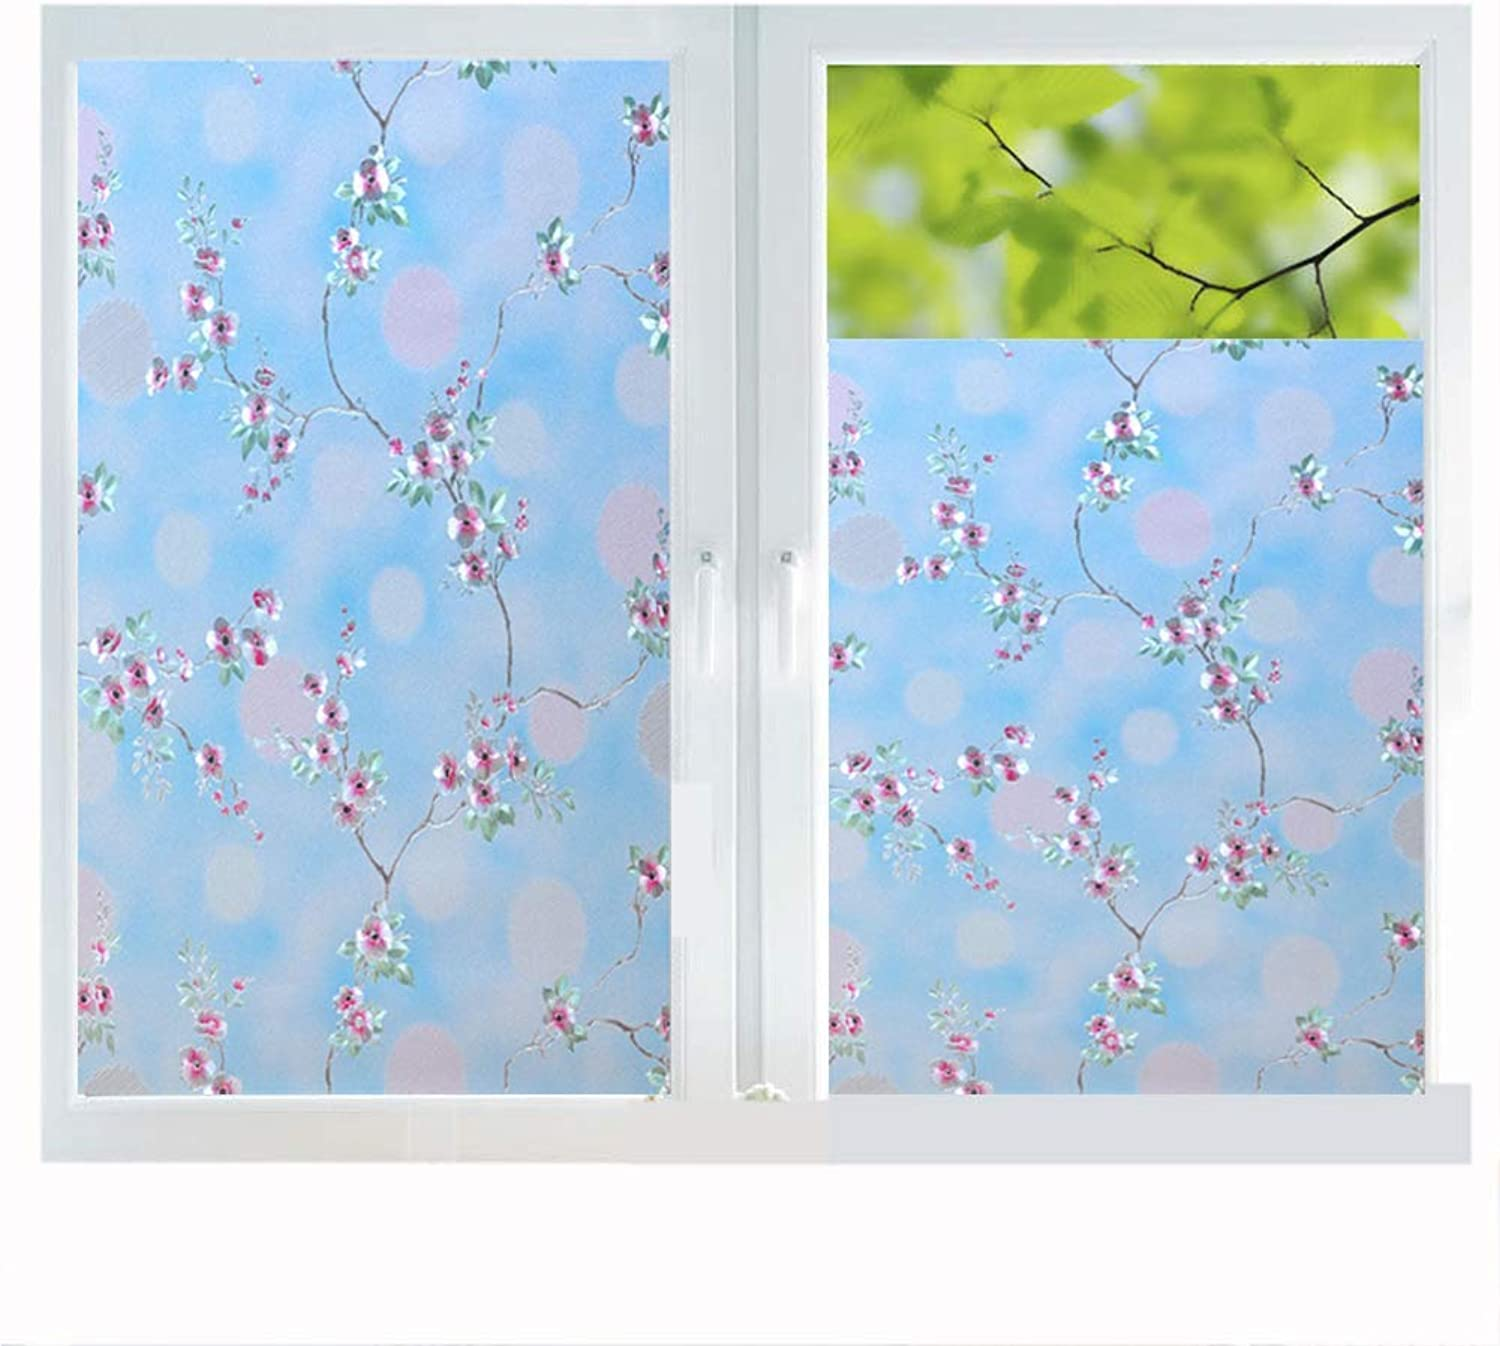 Window Sticker Film Privacy, Frosted Glass Decal Privacy Predection Heat Control Anti UV No Glue Frosting Stained Glass Static Cling Home Office,60x200cm(23x78in)